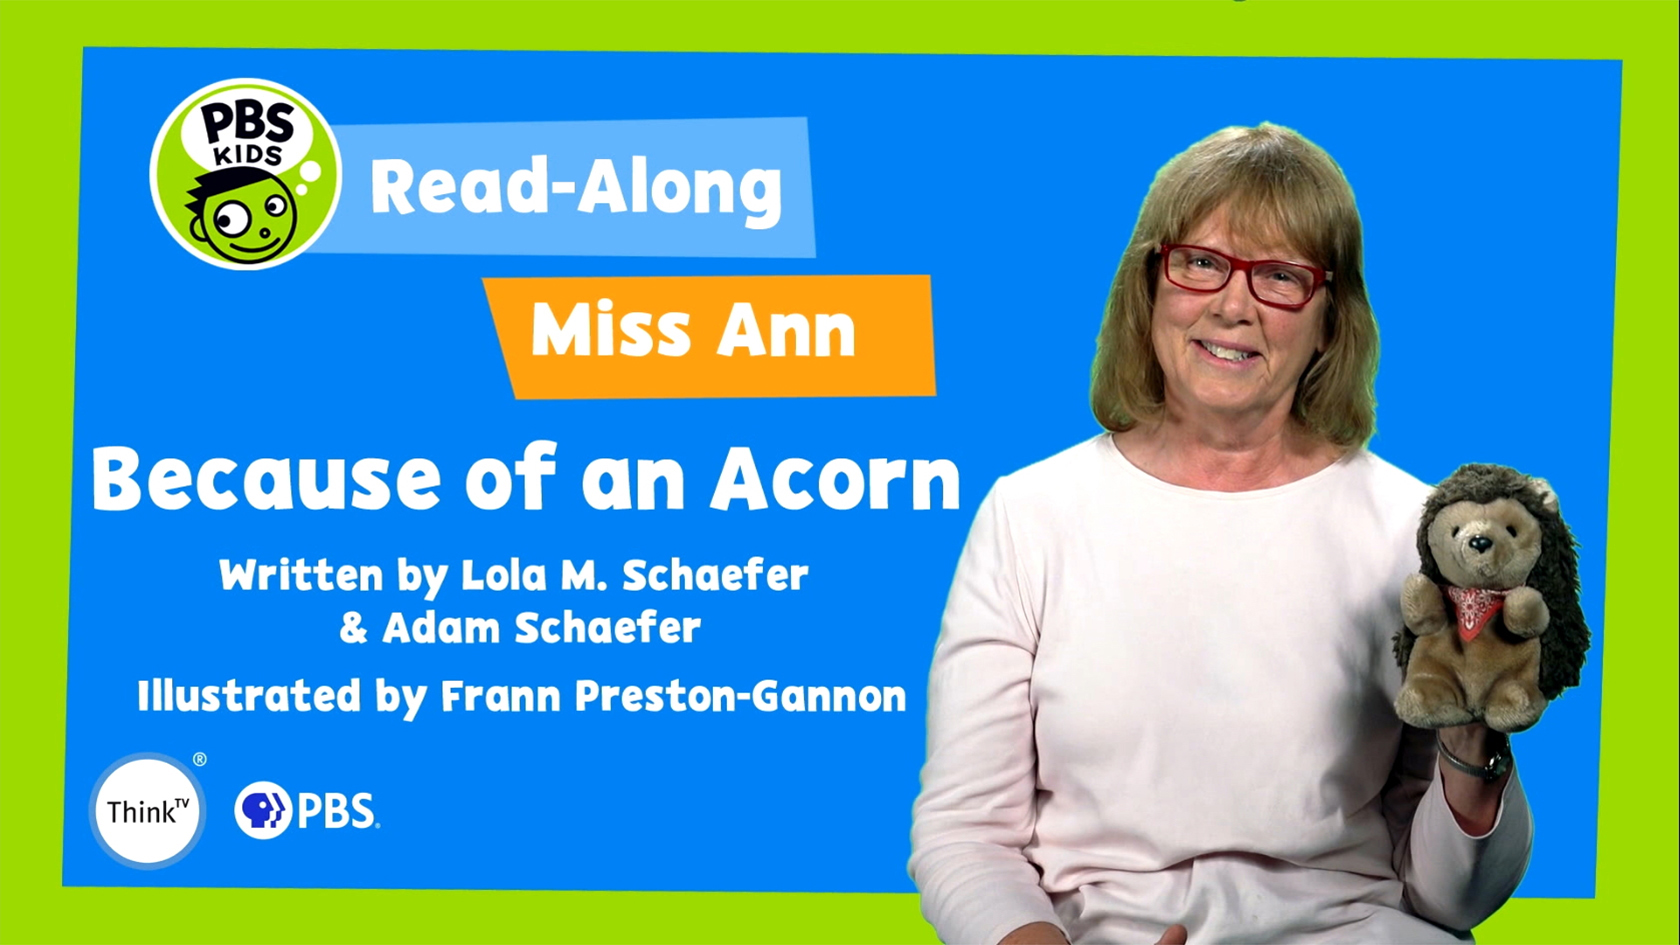 Read-Along with Miss Ann: Because of an Acorn